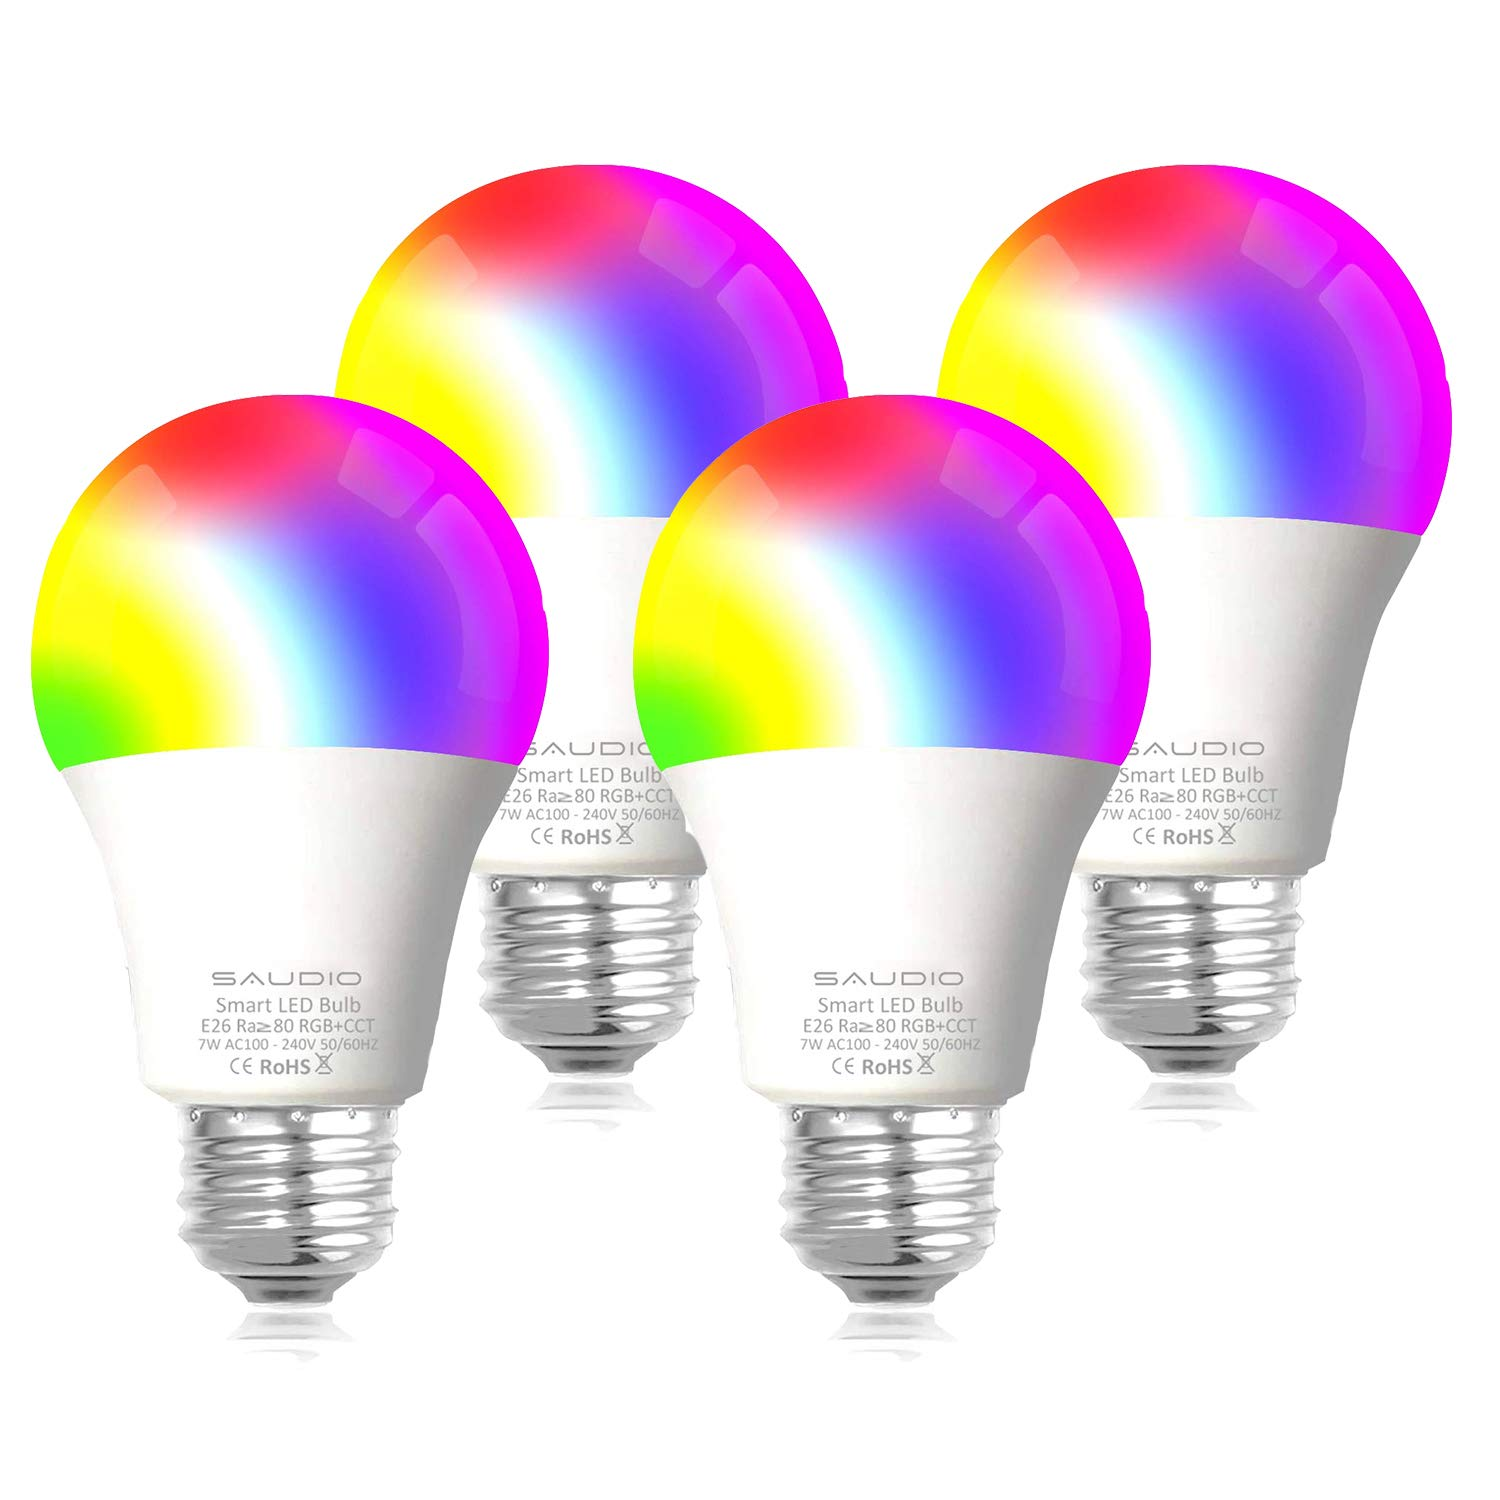 Smart LED Light Bulb E26 WiFi Multicolor Light Bulb Work with Siri,Alexa, Echo, Google Home and IFTTT (No Hub Required), Saudio A19 60W Equivalent RGB Color Changing Bulb(4 Pack)